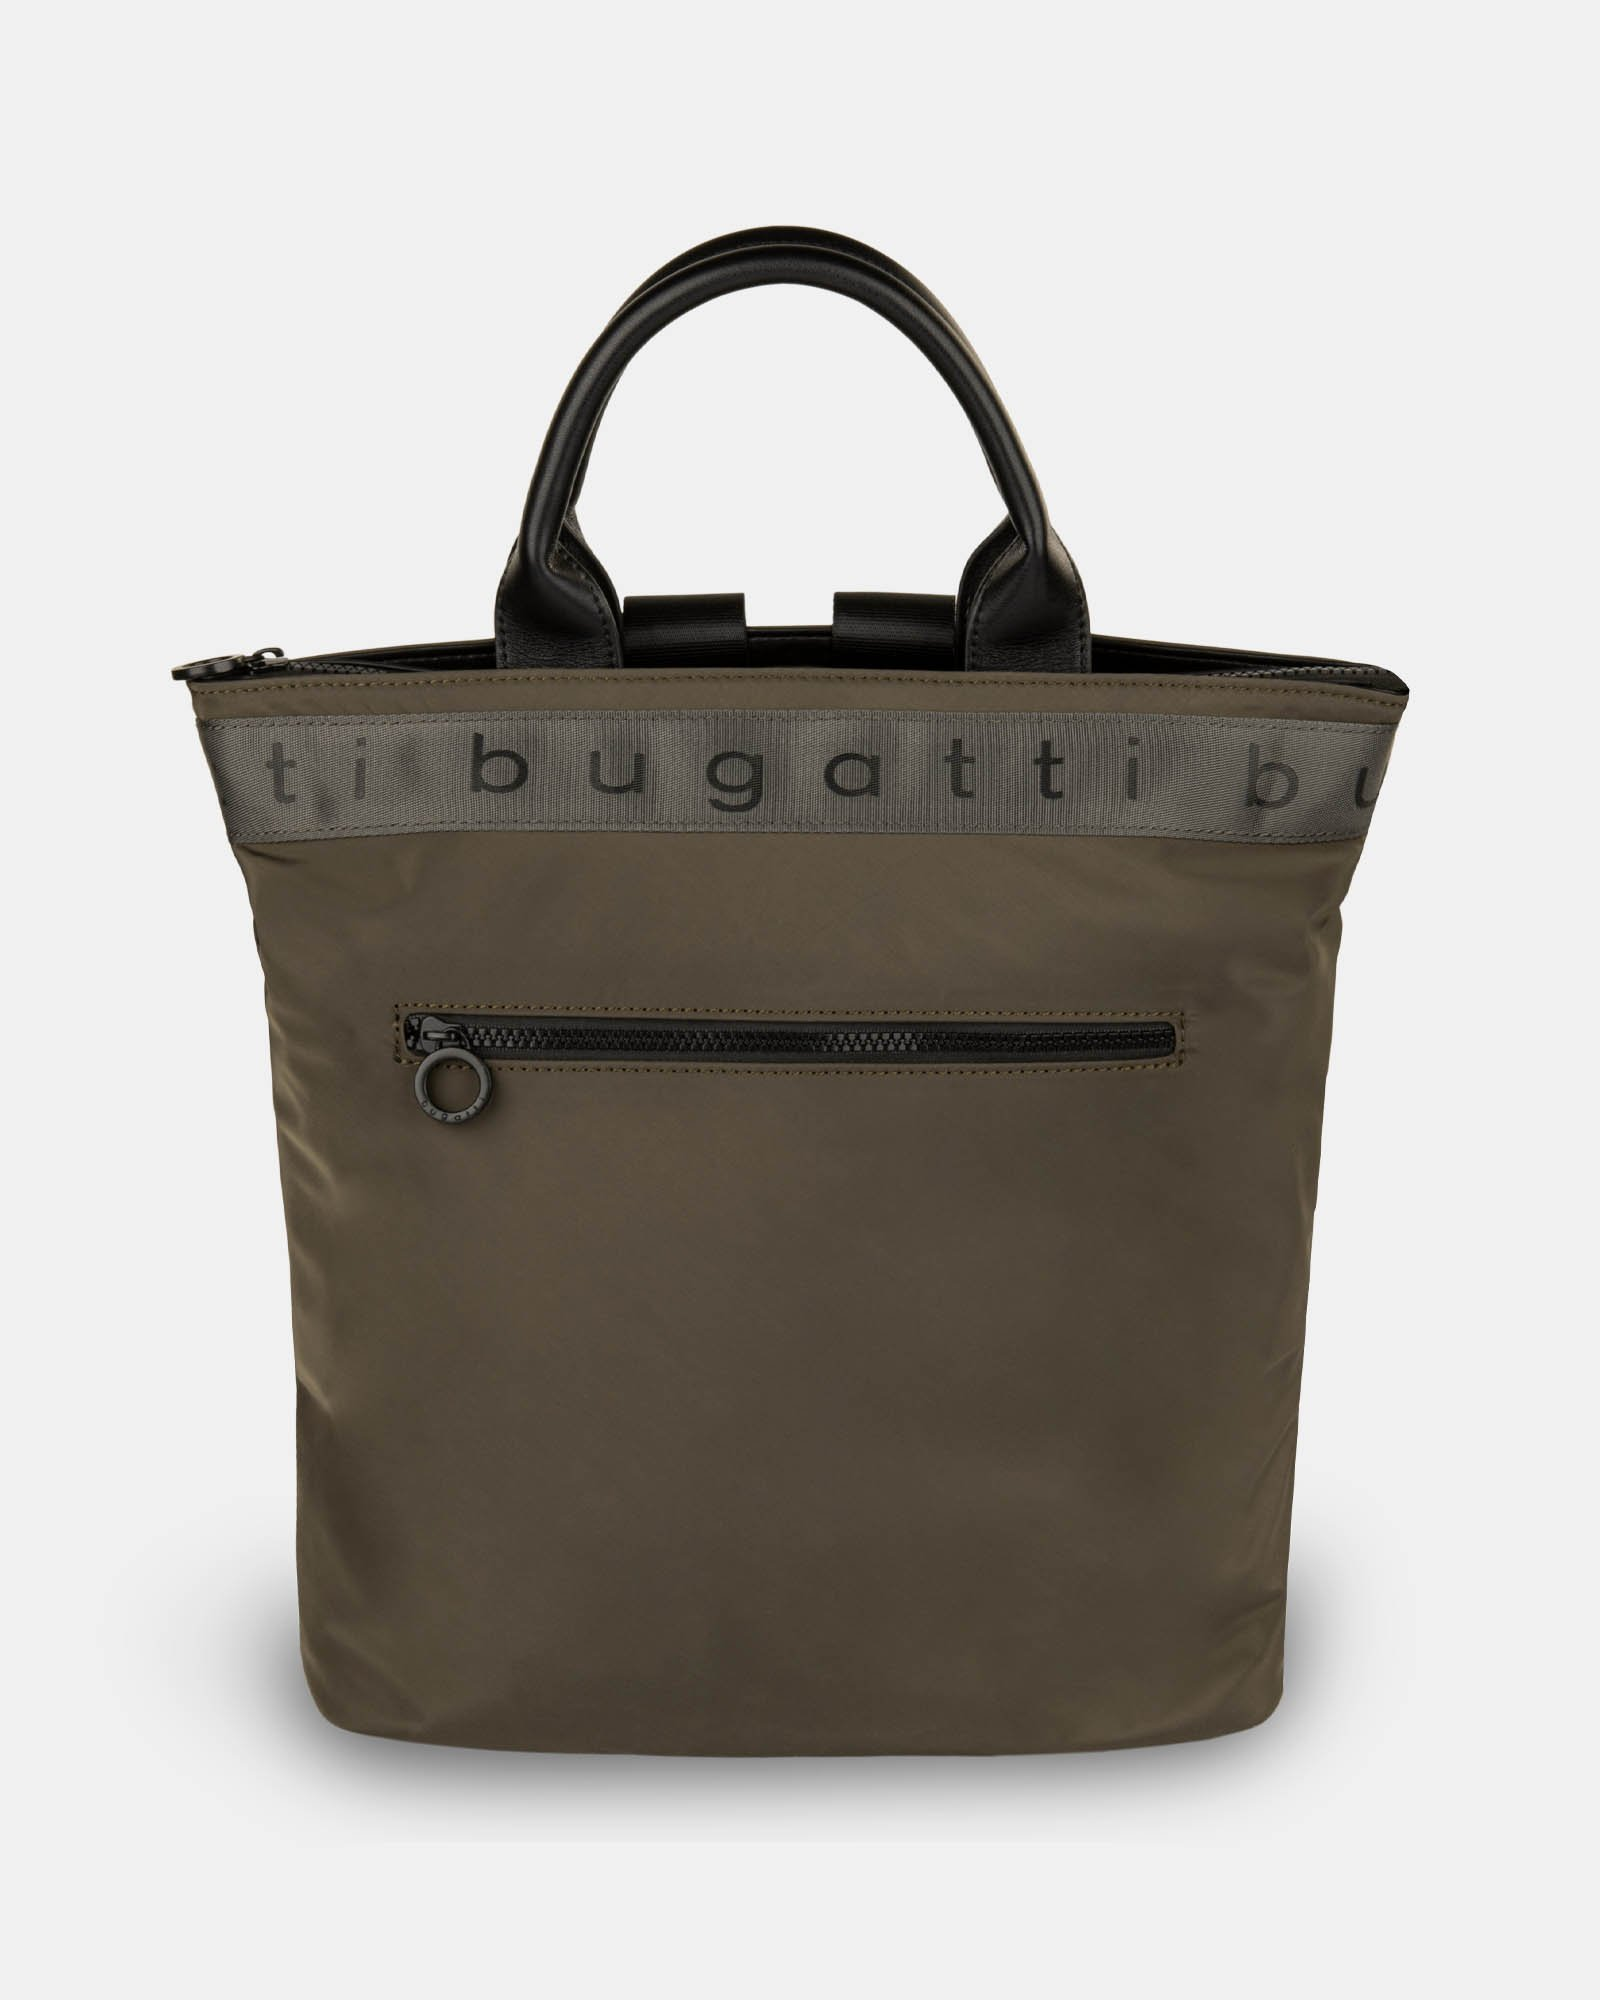 Tofino - Convertible Backpack/tote with Top zippered opening - Khaki - Bugatti - Zoom